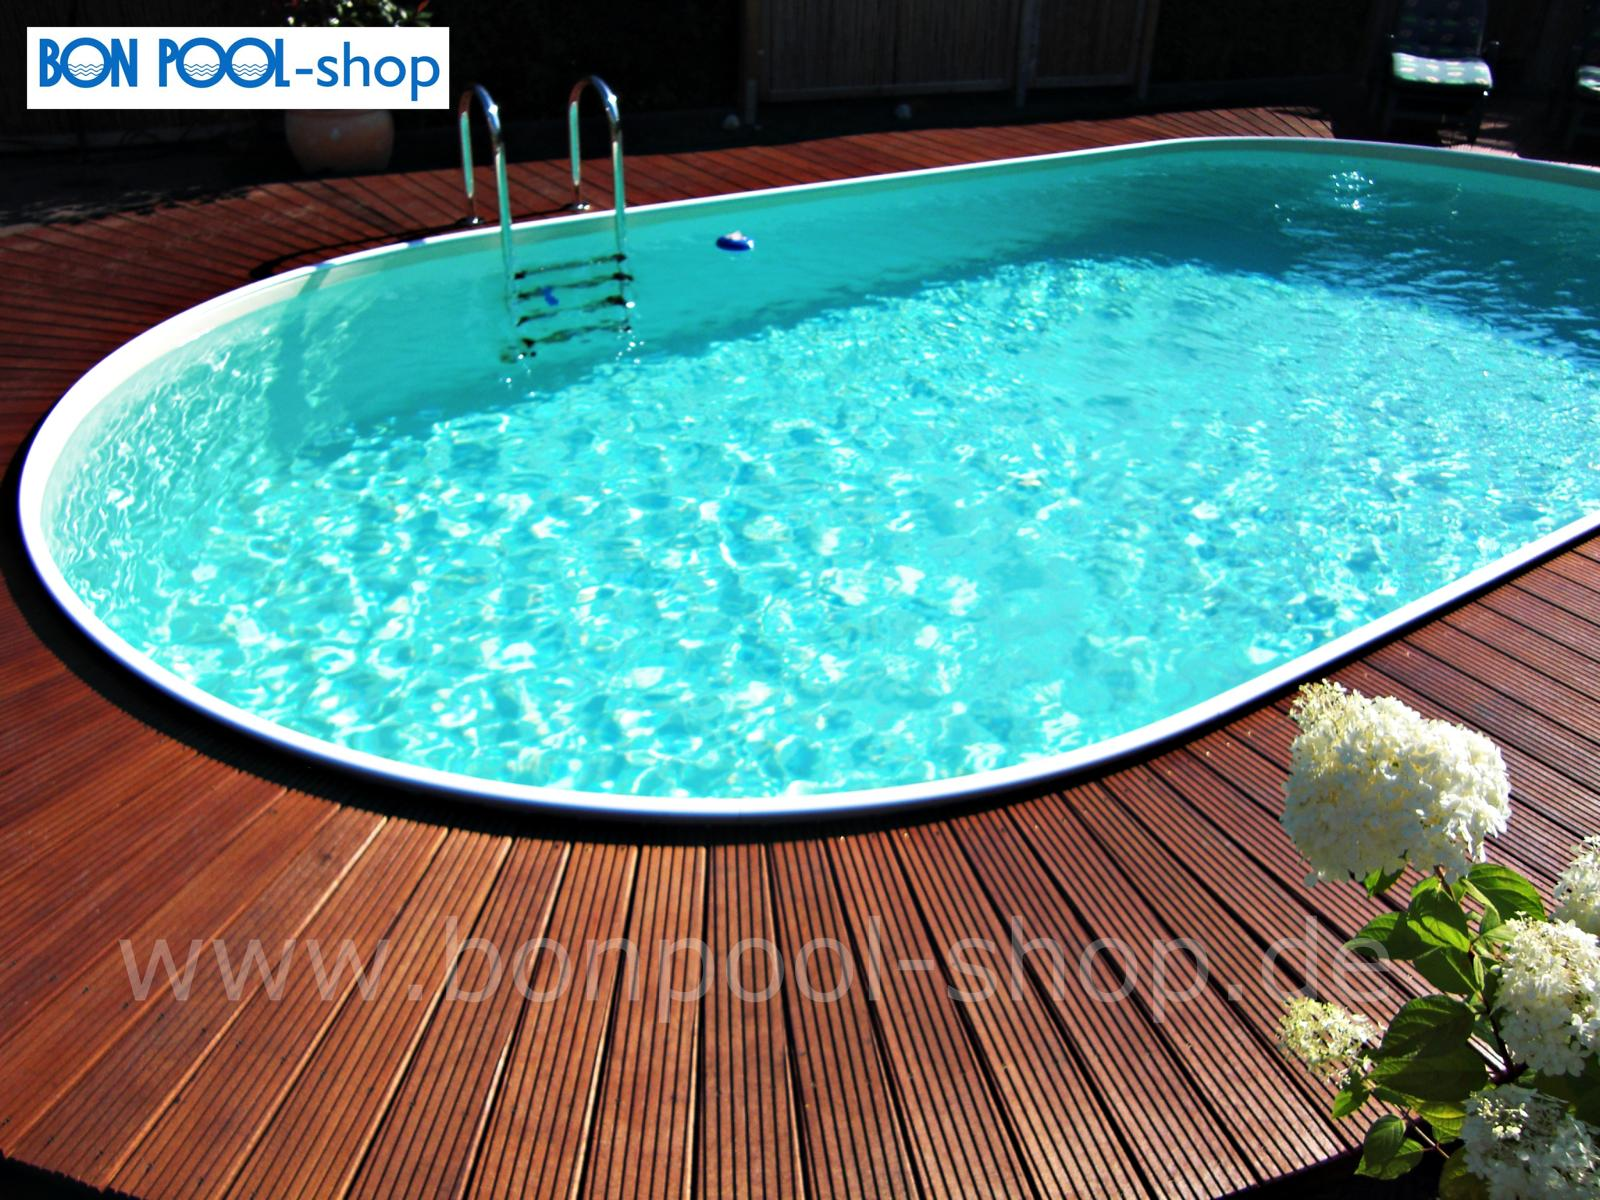 ovalbecken set 916 x 460 tiefe 150 bon pool